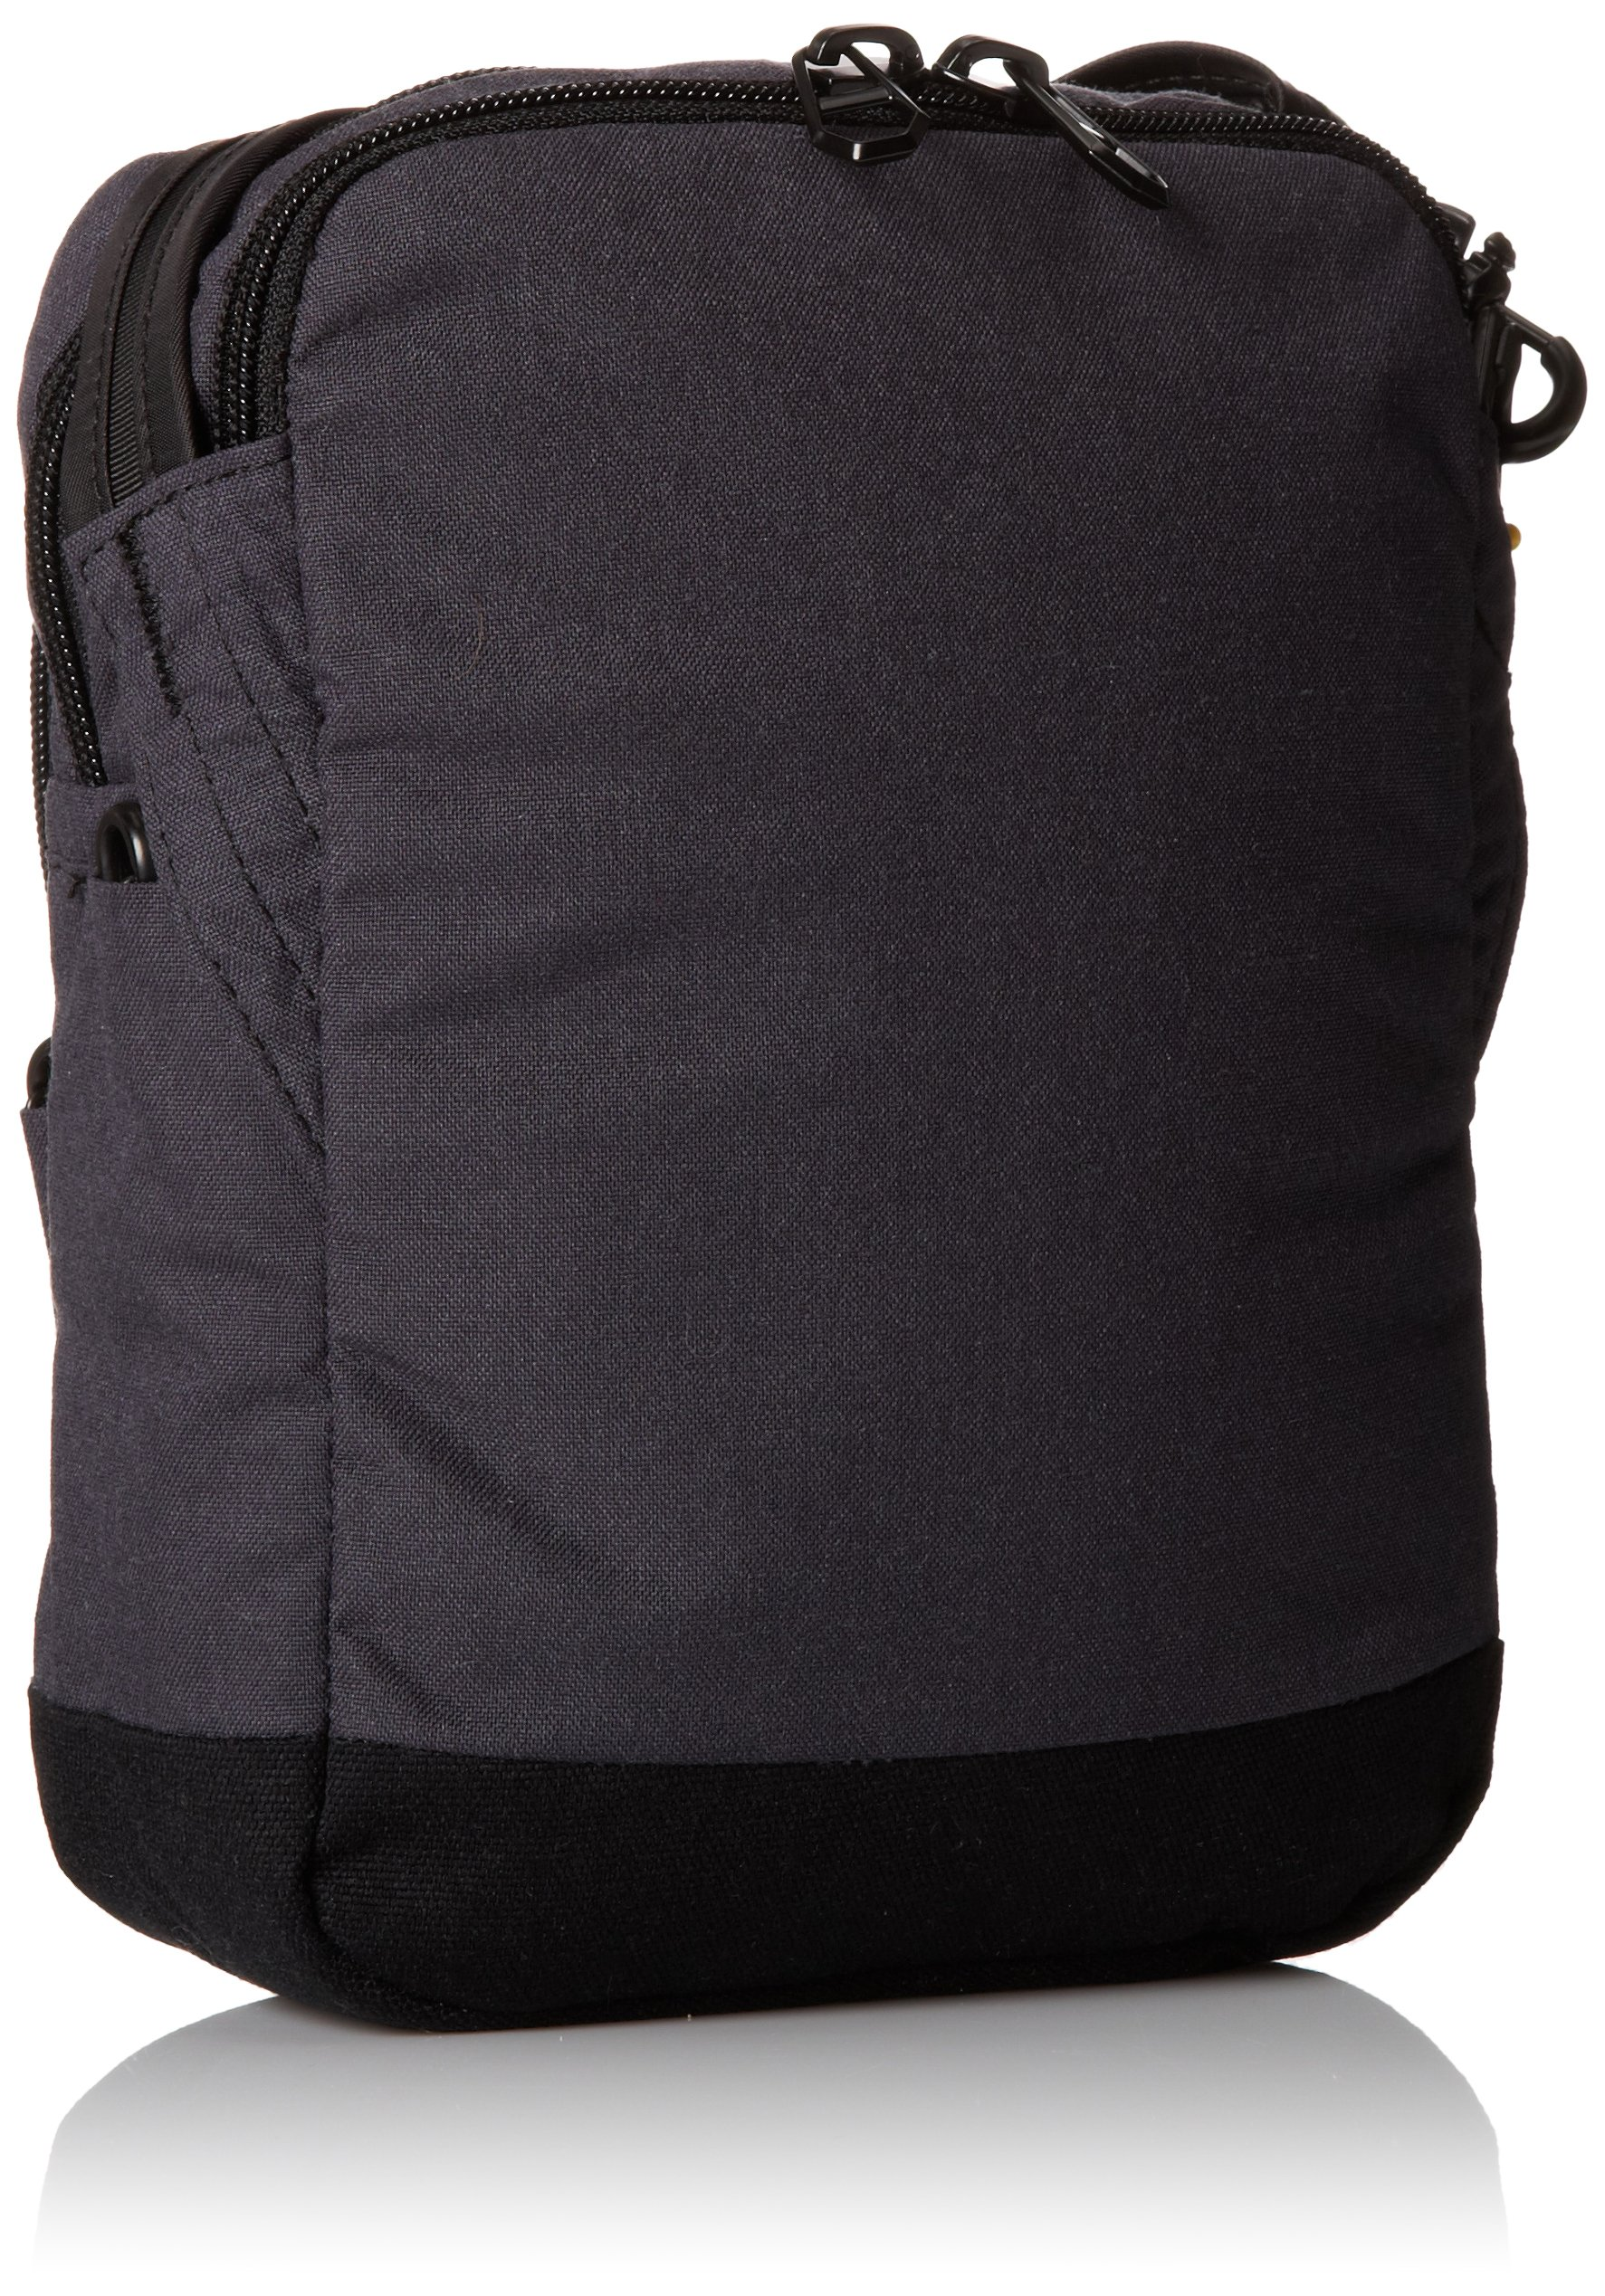 Galleon - Pacsafe Citysafe LS75 Anti-Theft Cross-Body Travel Bag 8bb81aa17468b